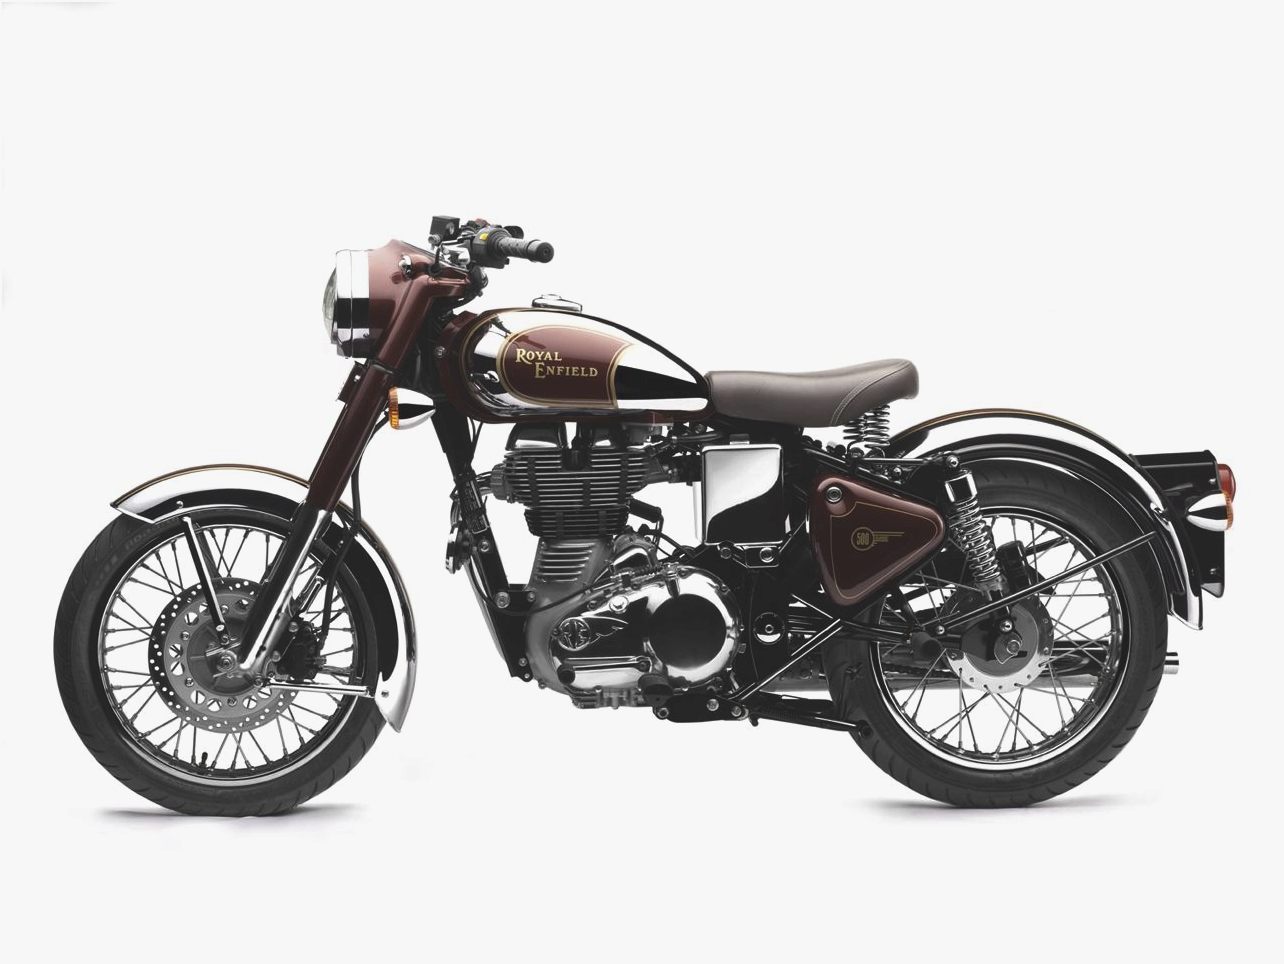 Royal Enfield Bullet 350 Classic 2009 images #123520